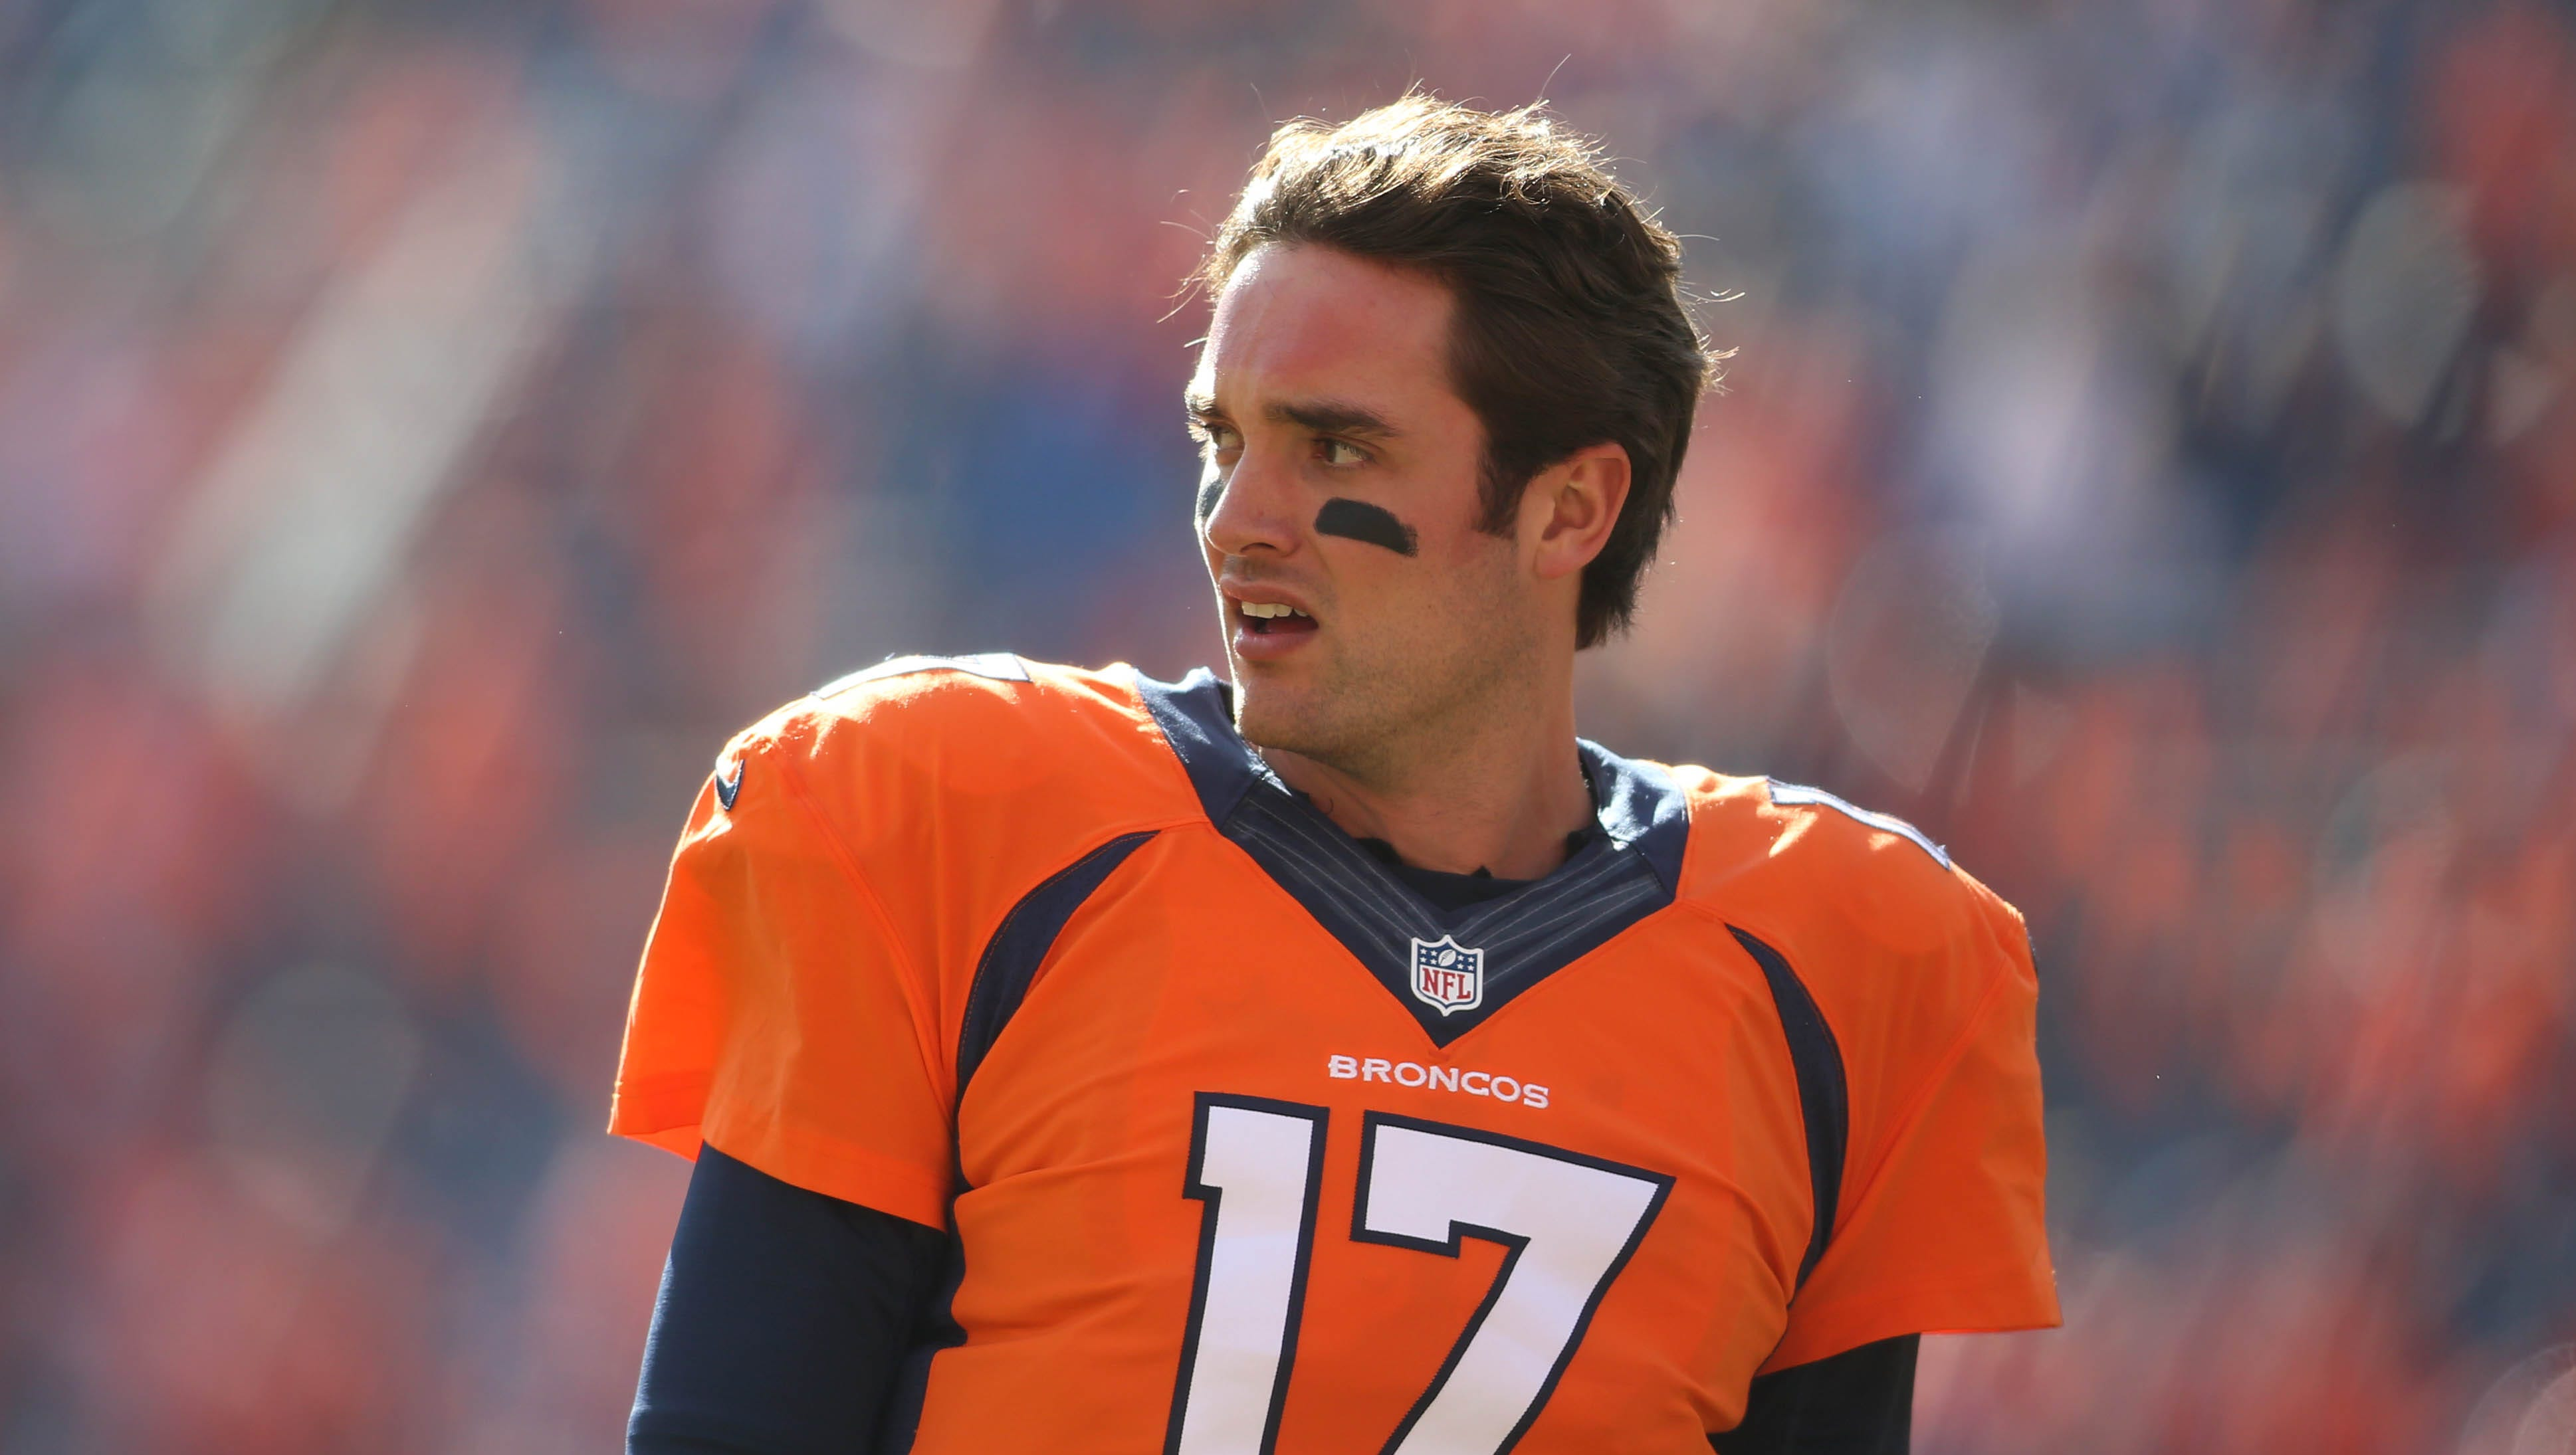 Brock Osweiler signs $72 million deal with Houston Texans